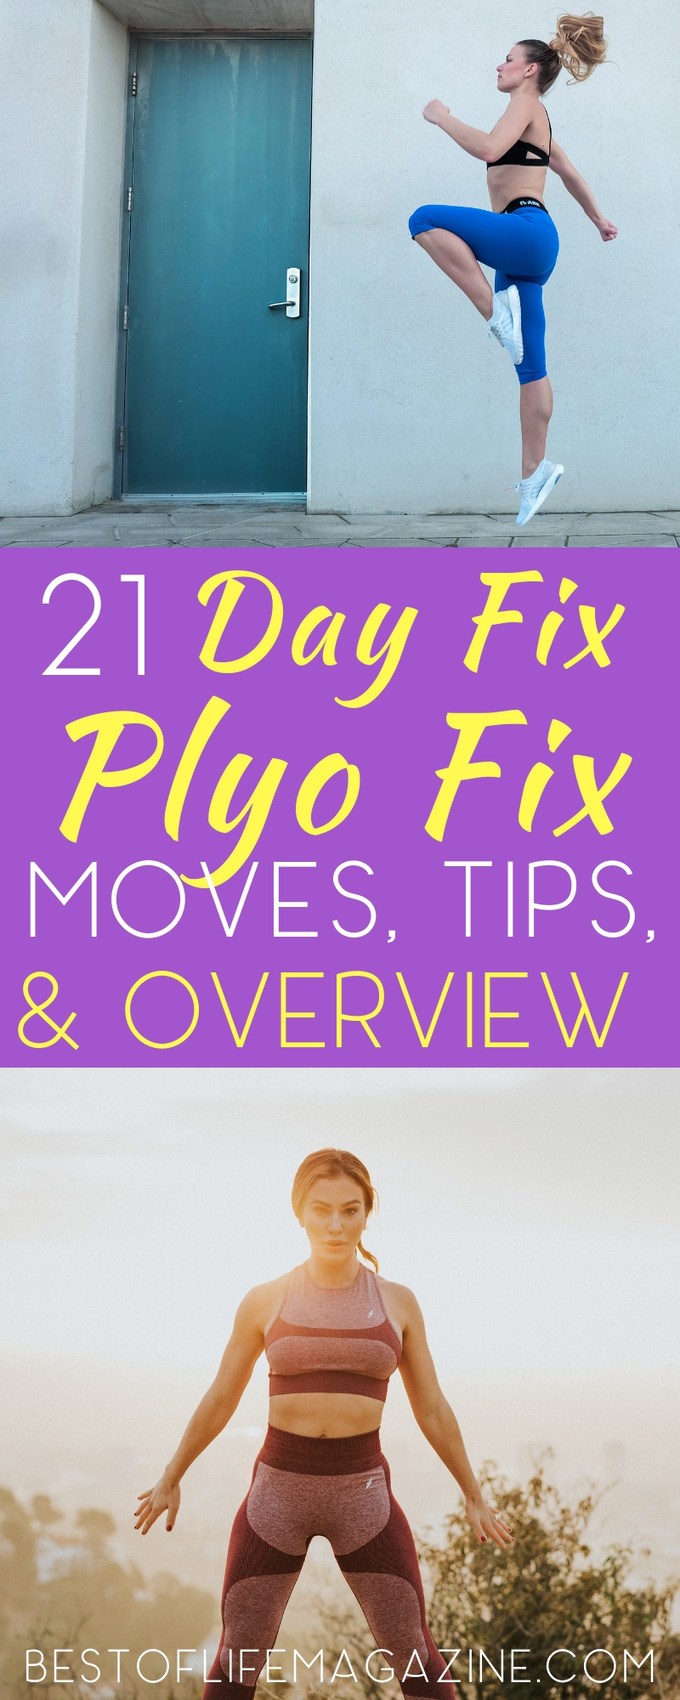 Get ready for 6 rounds of sweat and hard work in the 21 Day Fix Plyo Fix workout! This workout will burn fat and calories in just 30 minutes! 21 Day Fix Workout Schedules | 21 Day Fix Workouts | Beachbody Workouts | 21 Day Fix Workout Exercises | Plyo Exercises | Plyo Workouts | Plyometrics Workouts #21dayfix